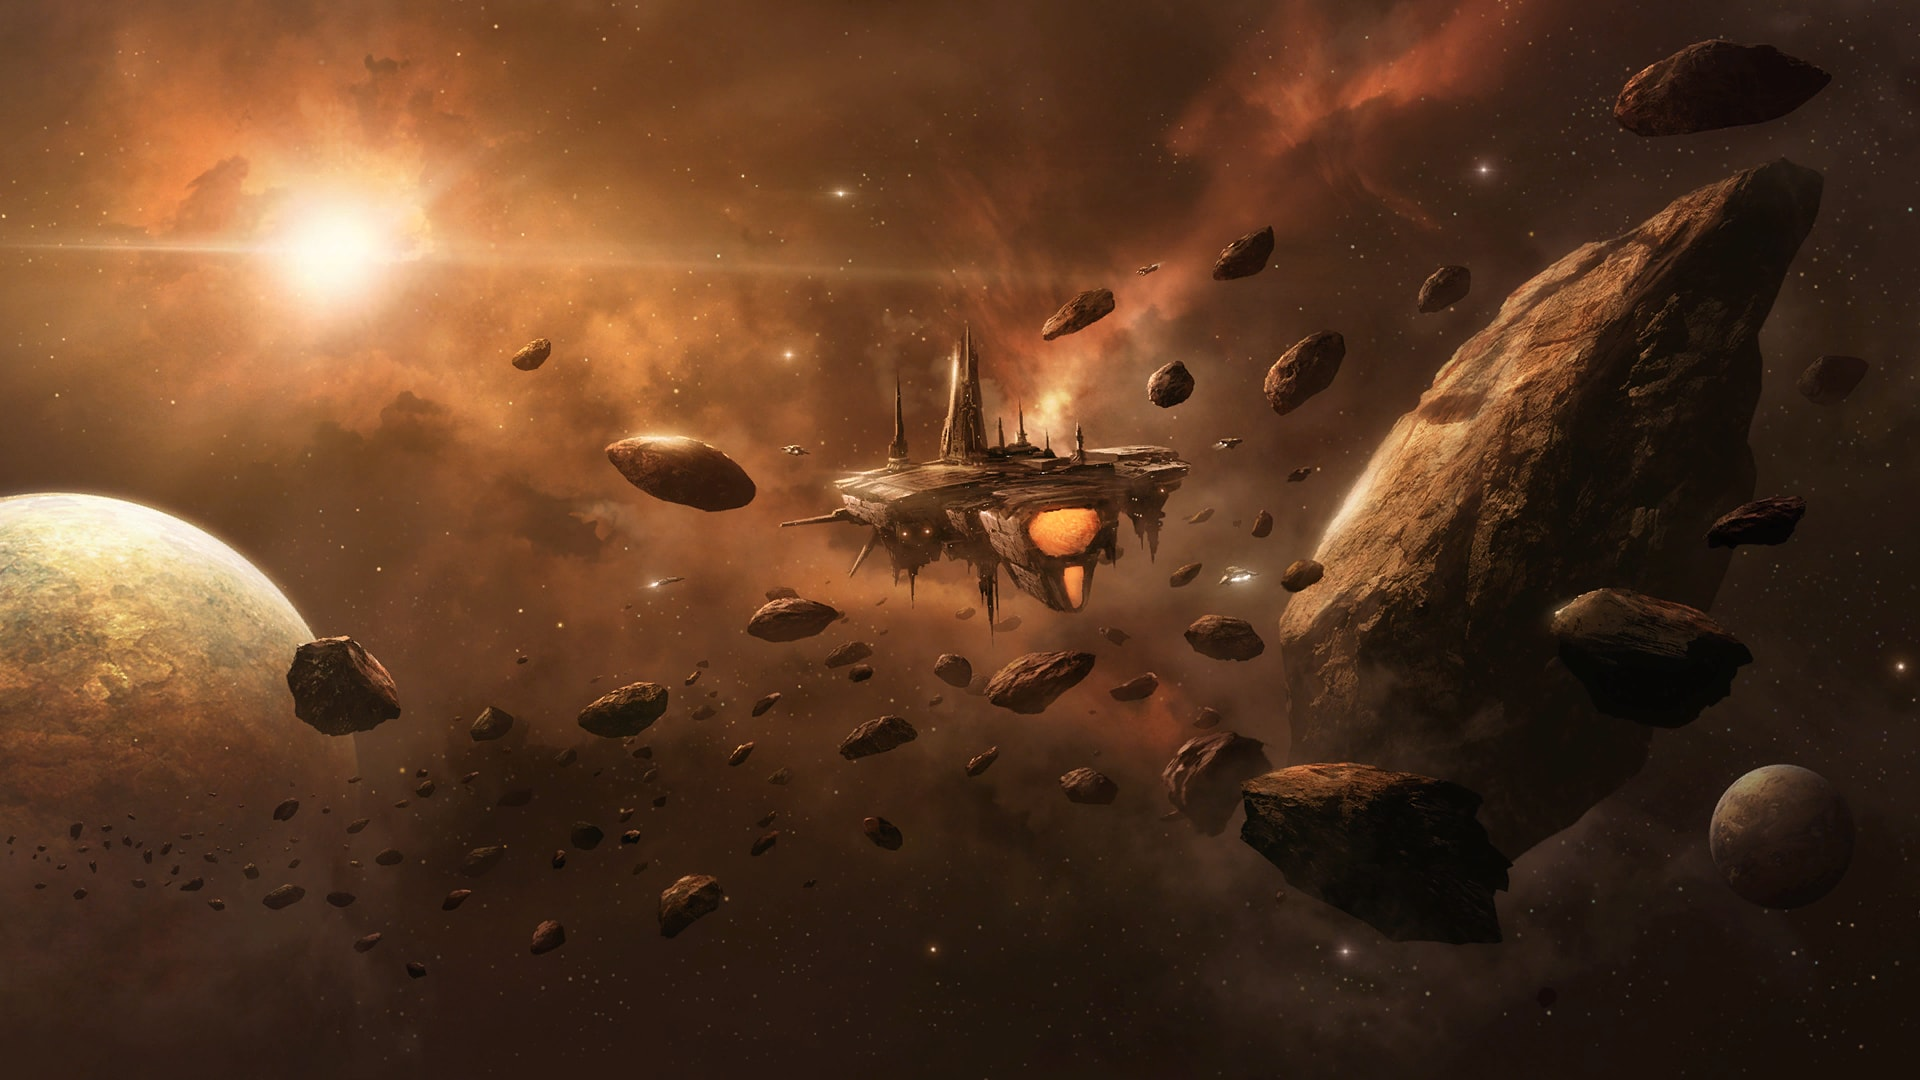 Free download Stellaris HD Wallpapers - Read games review, play online games & download games ...